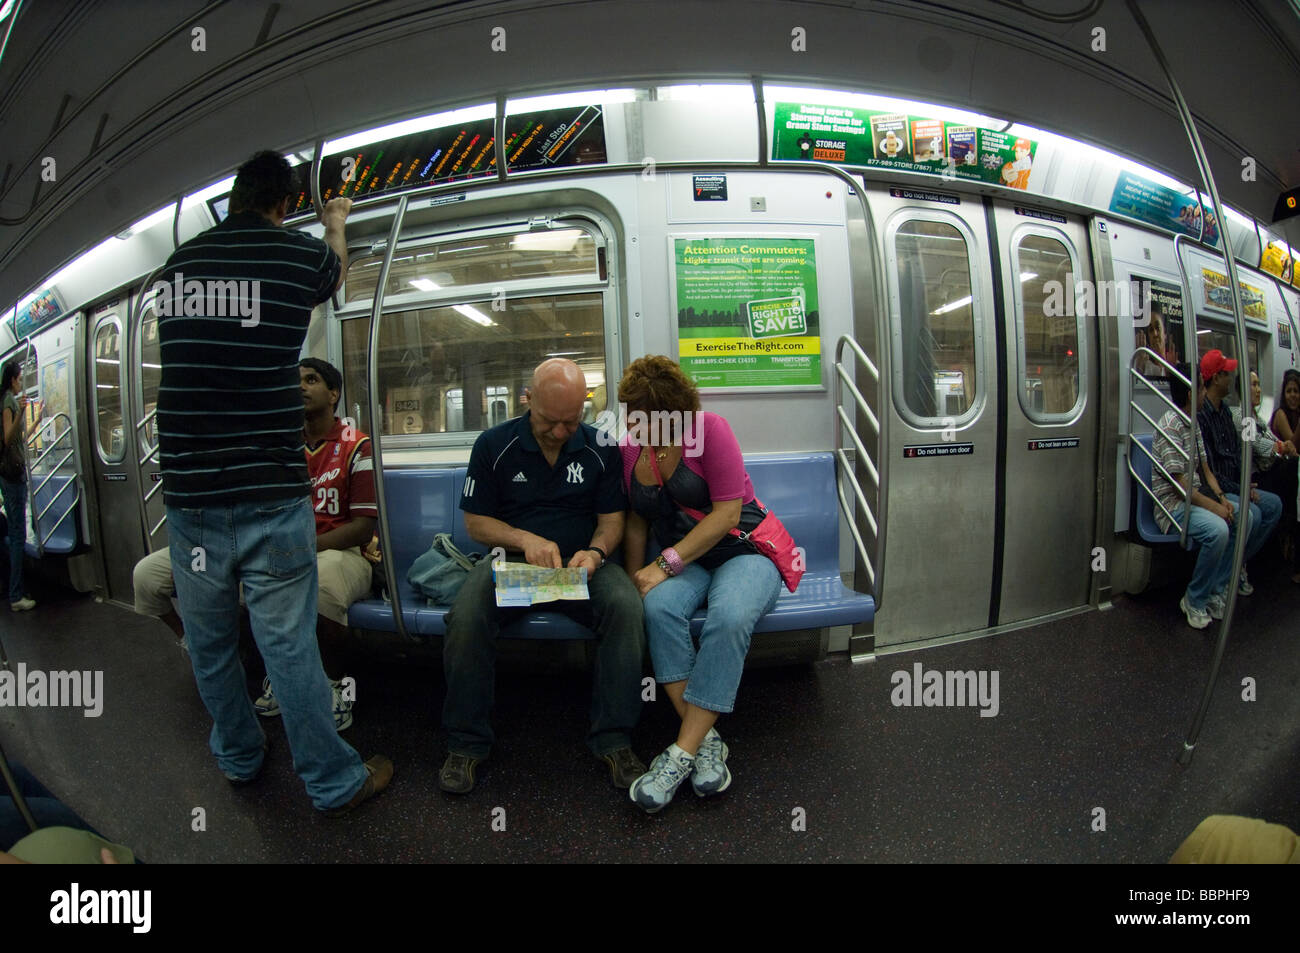 Reading The New York City Subway Map.Tourists On The Subway Reading A Map In New York On Sunday May 24